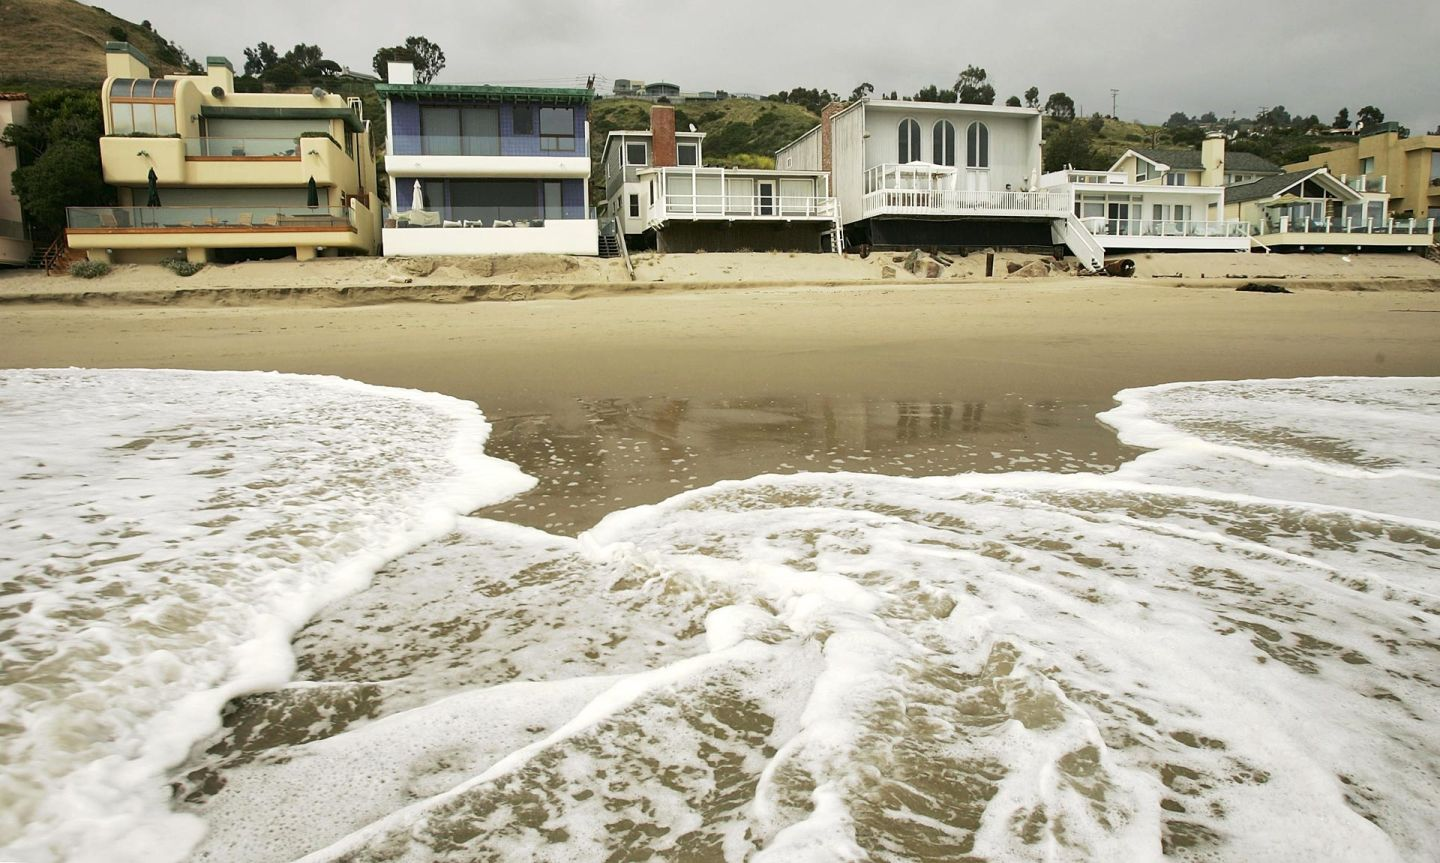 Luxurious beach houses crowd the shoreline hiding Carbon Beach in Malibu. A lengthy legal battle over public access to the beach culminated in 2005, with music producer David Geffen allowing a public pathway across his property in exchange for permits from the Coastal Commission to begin building a Cape Cod-style compound across multiple lots.  David McNew/Getty Images